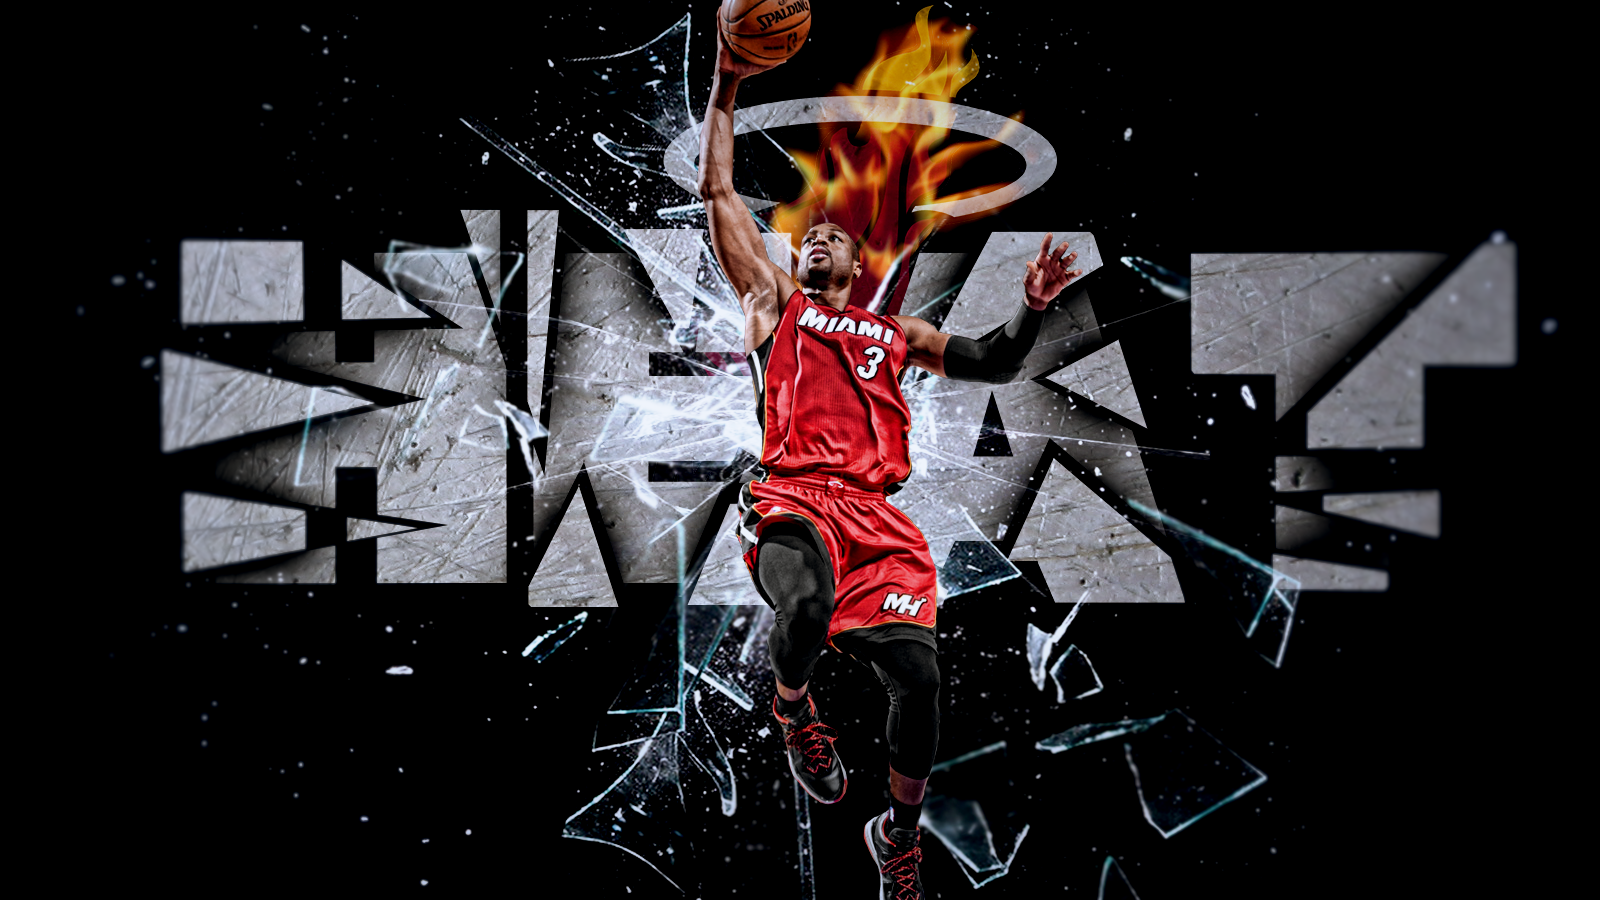 Heat Wallpaper in HQ Resolution